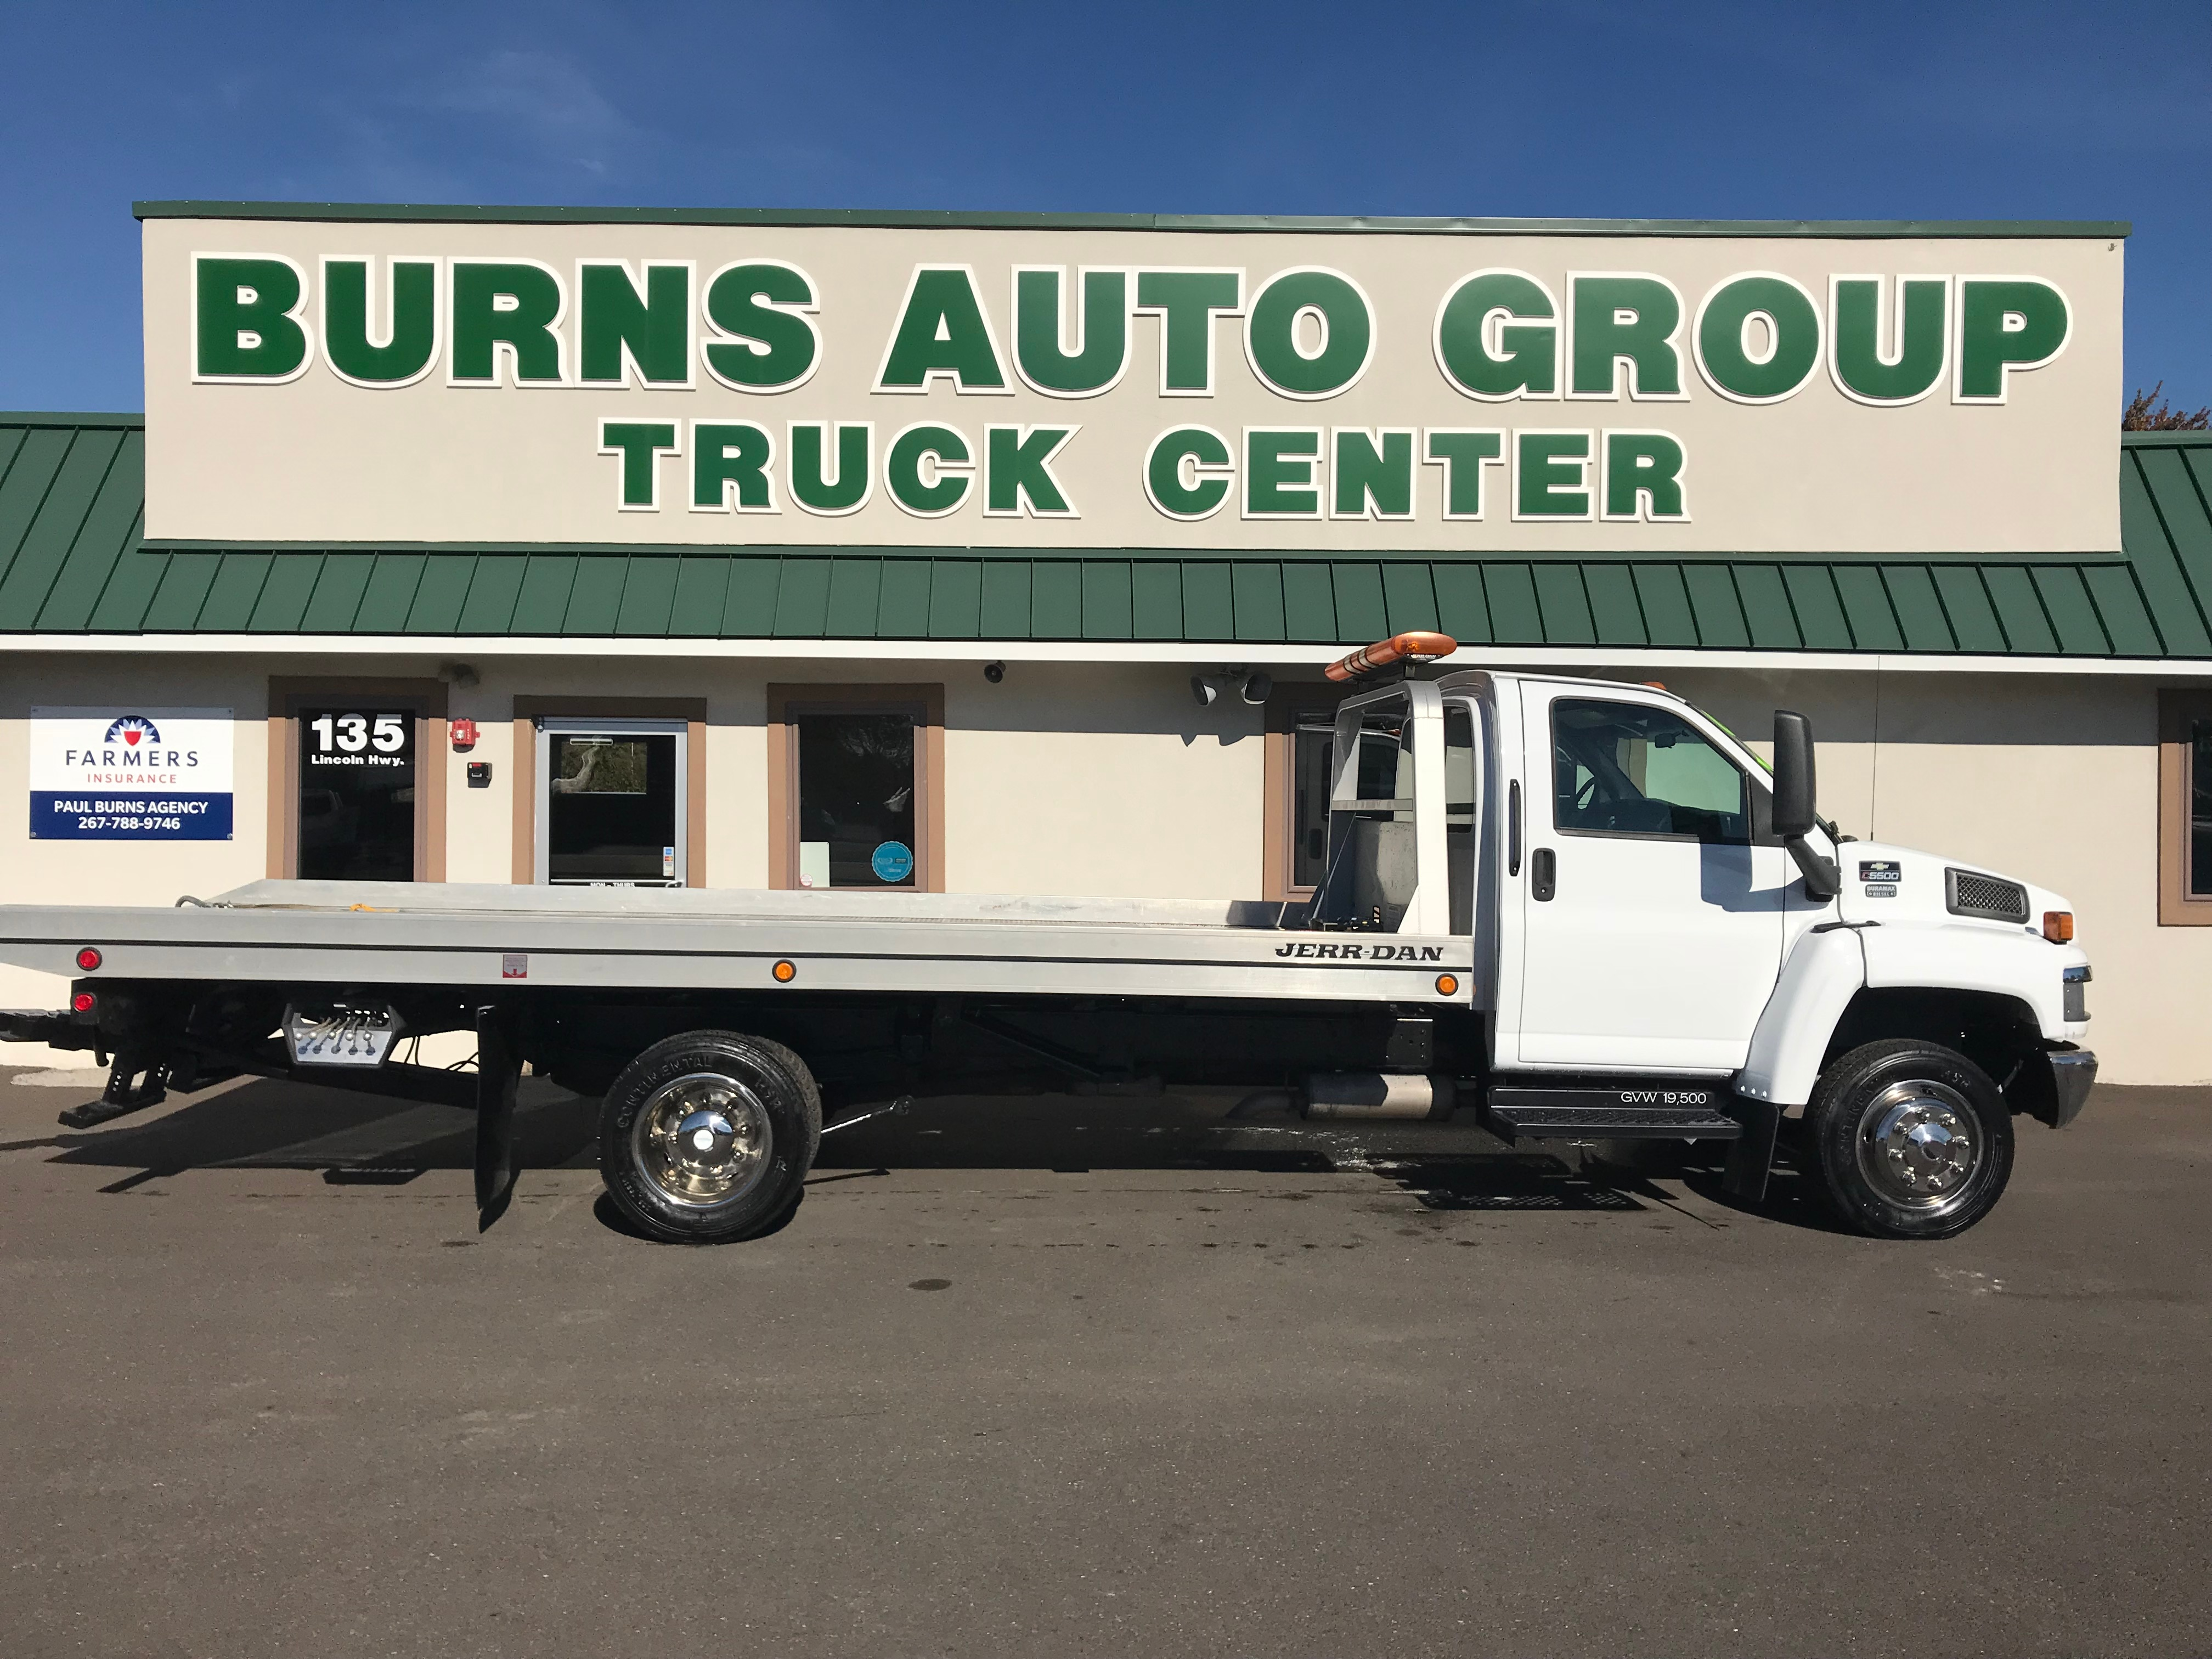 2004 Chevrolet C5500 Rollback Tow Truck